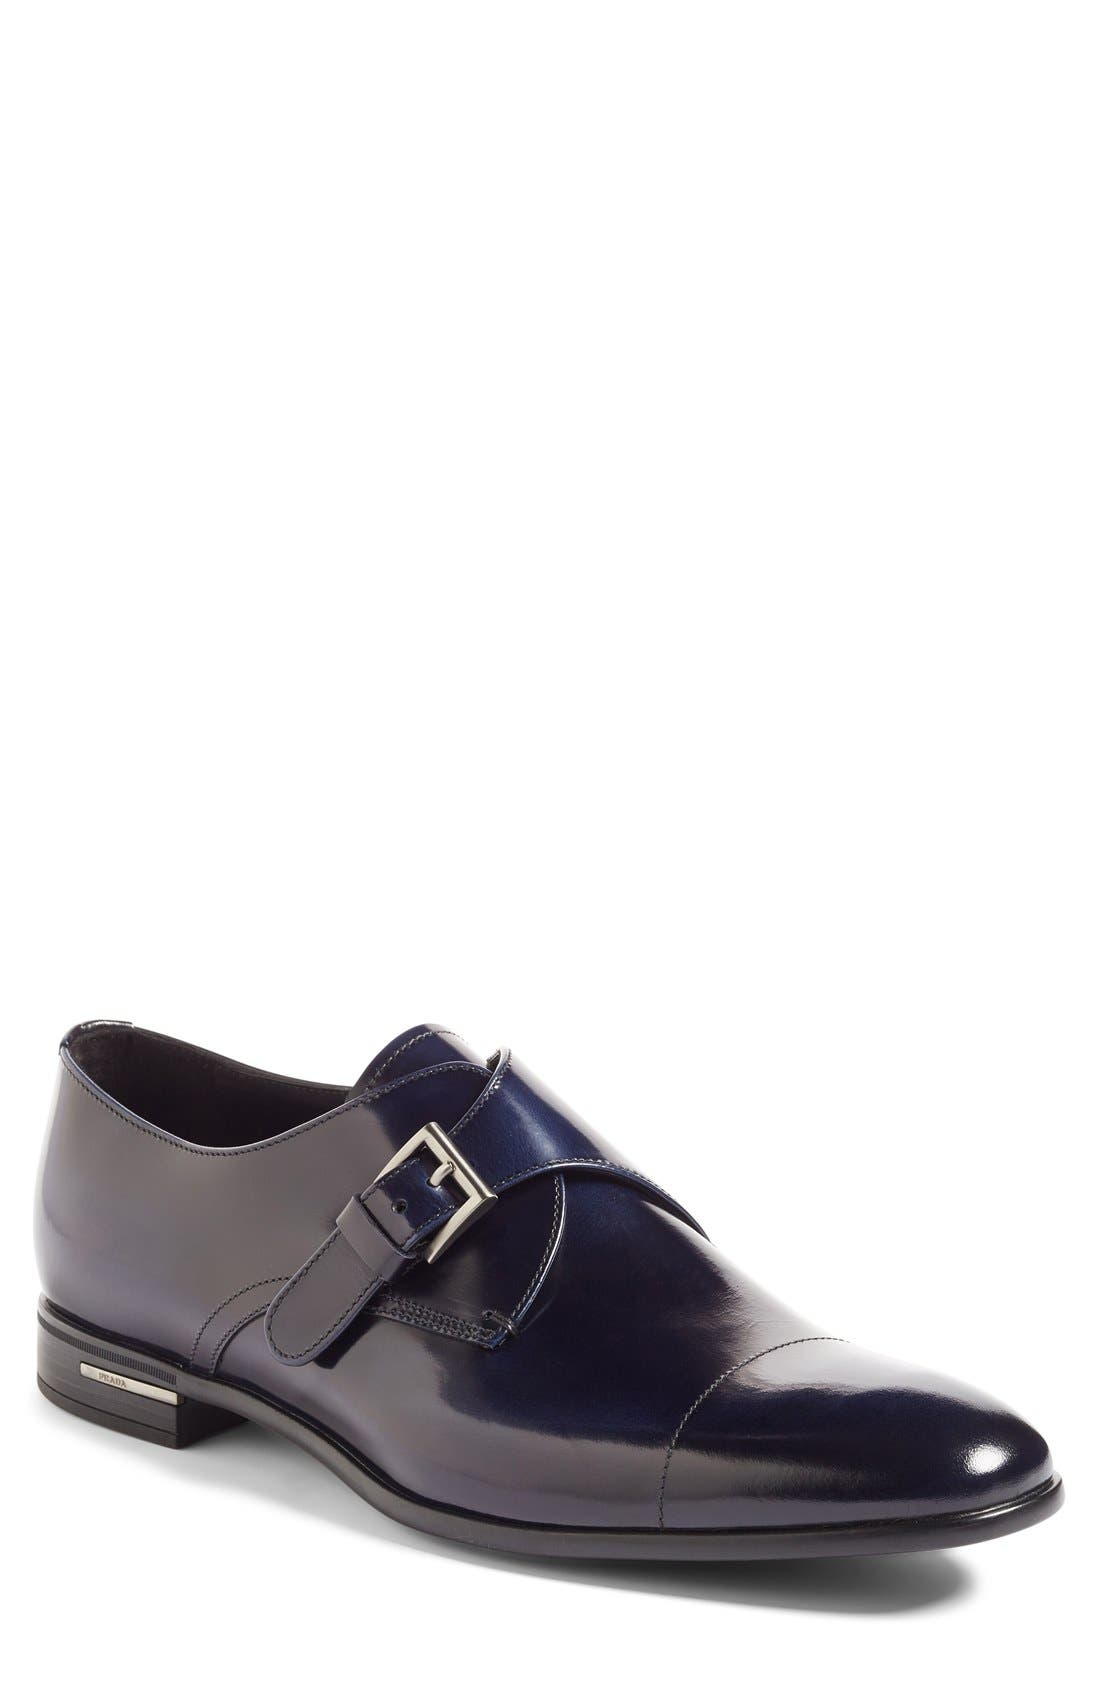 Prada Monk Strap Shoe (Men)